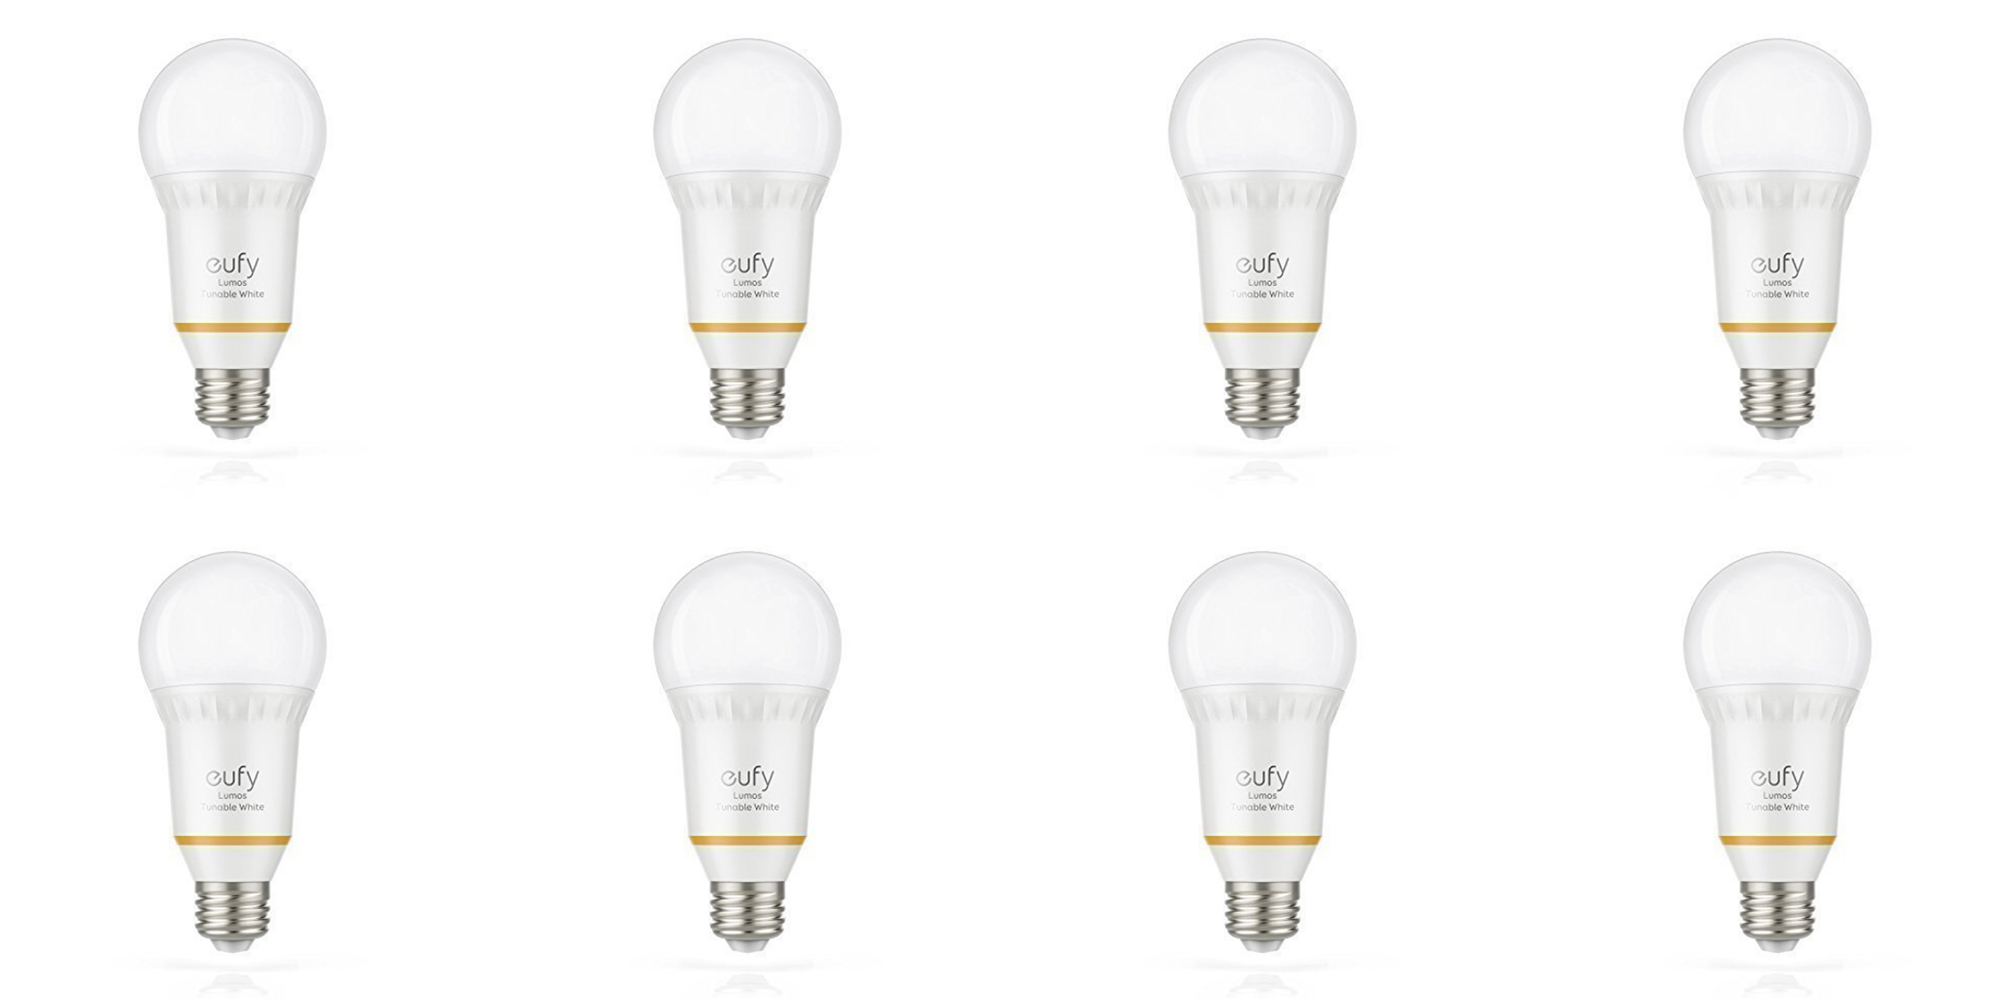 anker u0026 39 s lumos dimmable smart bulbs w   alexa control are now just  26  reg   30